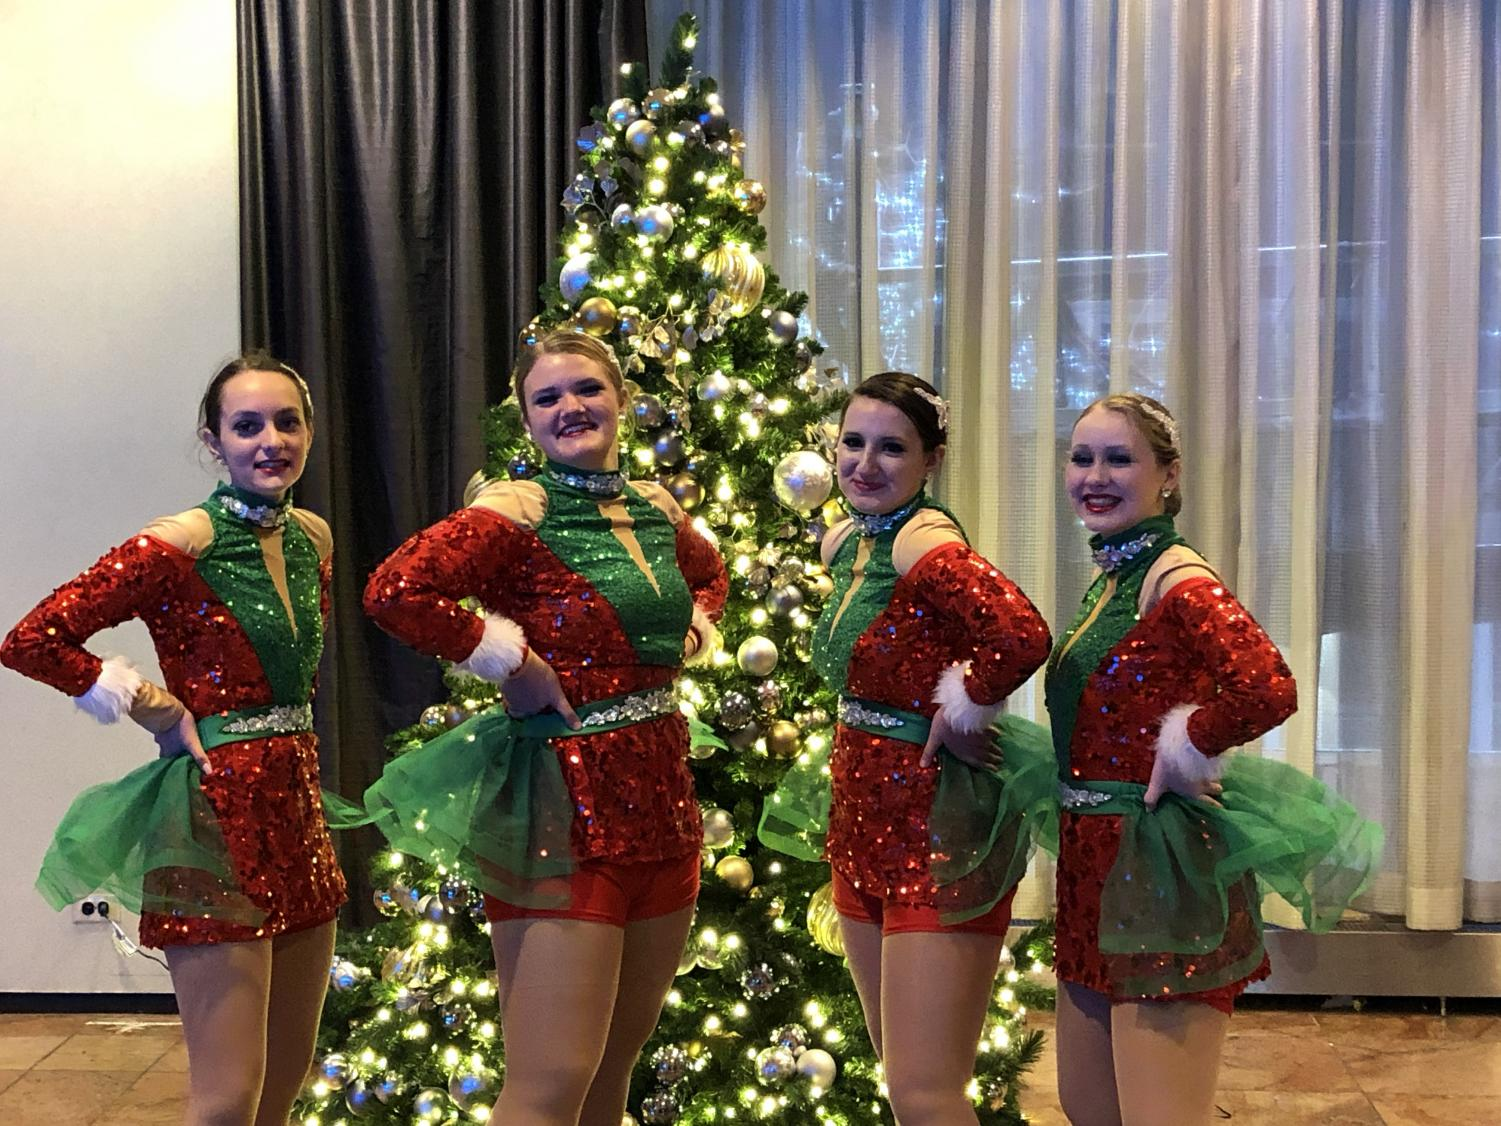 Avery Lewis, Sydney Bell, Faith Anton and Audrey Brink (left to right) pose in their uniforms on the day of the parade.